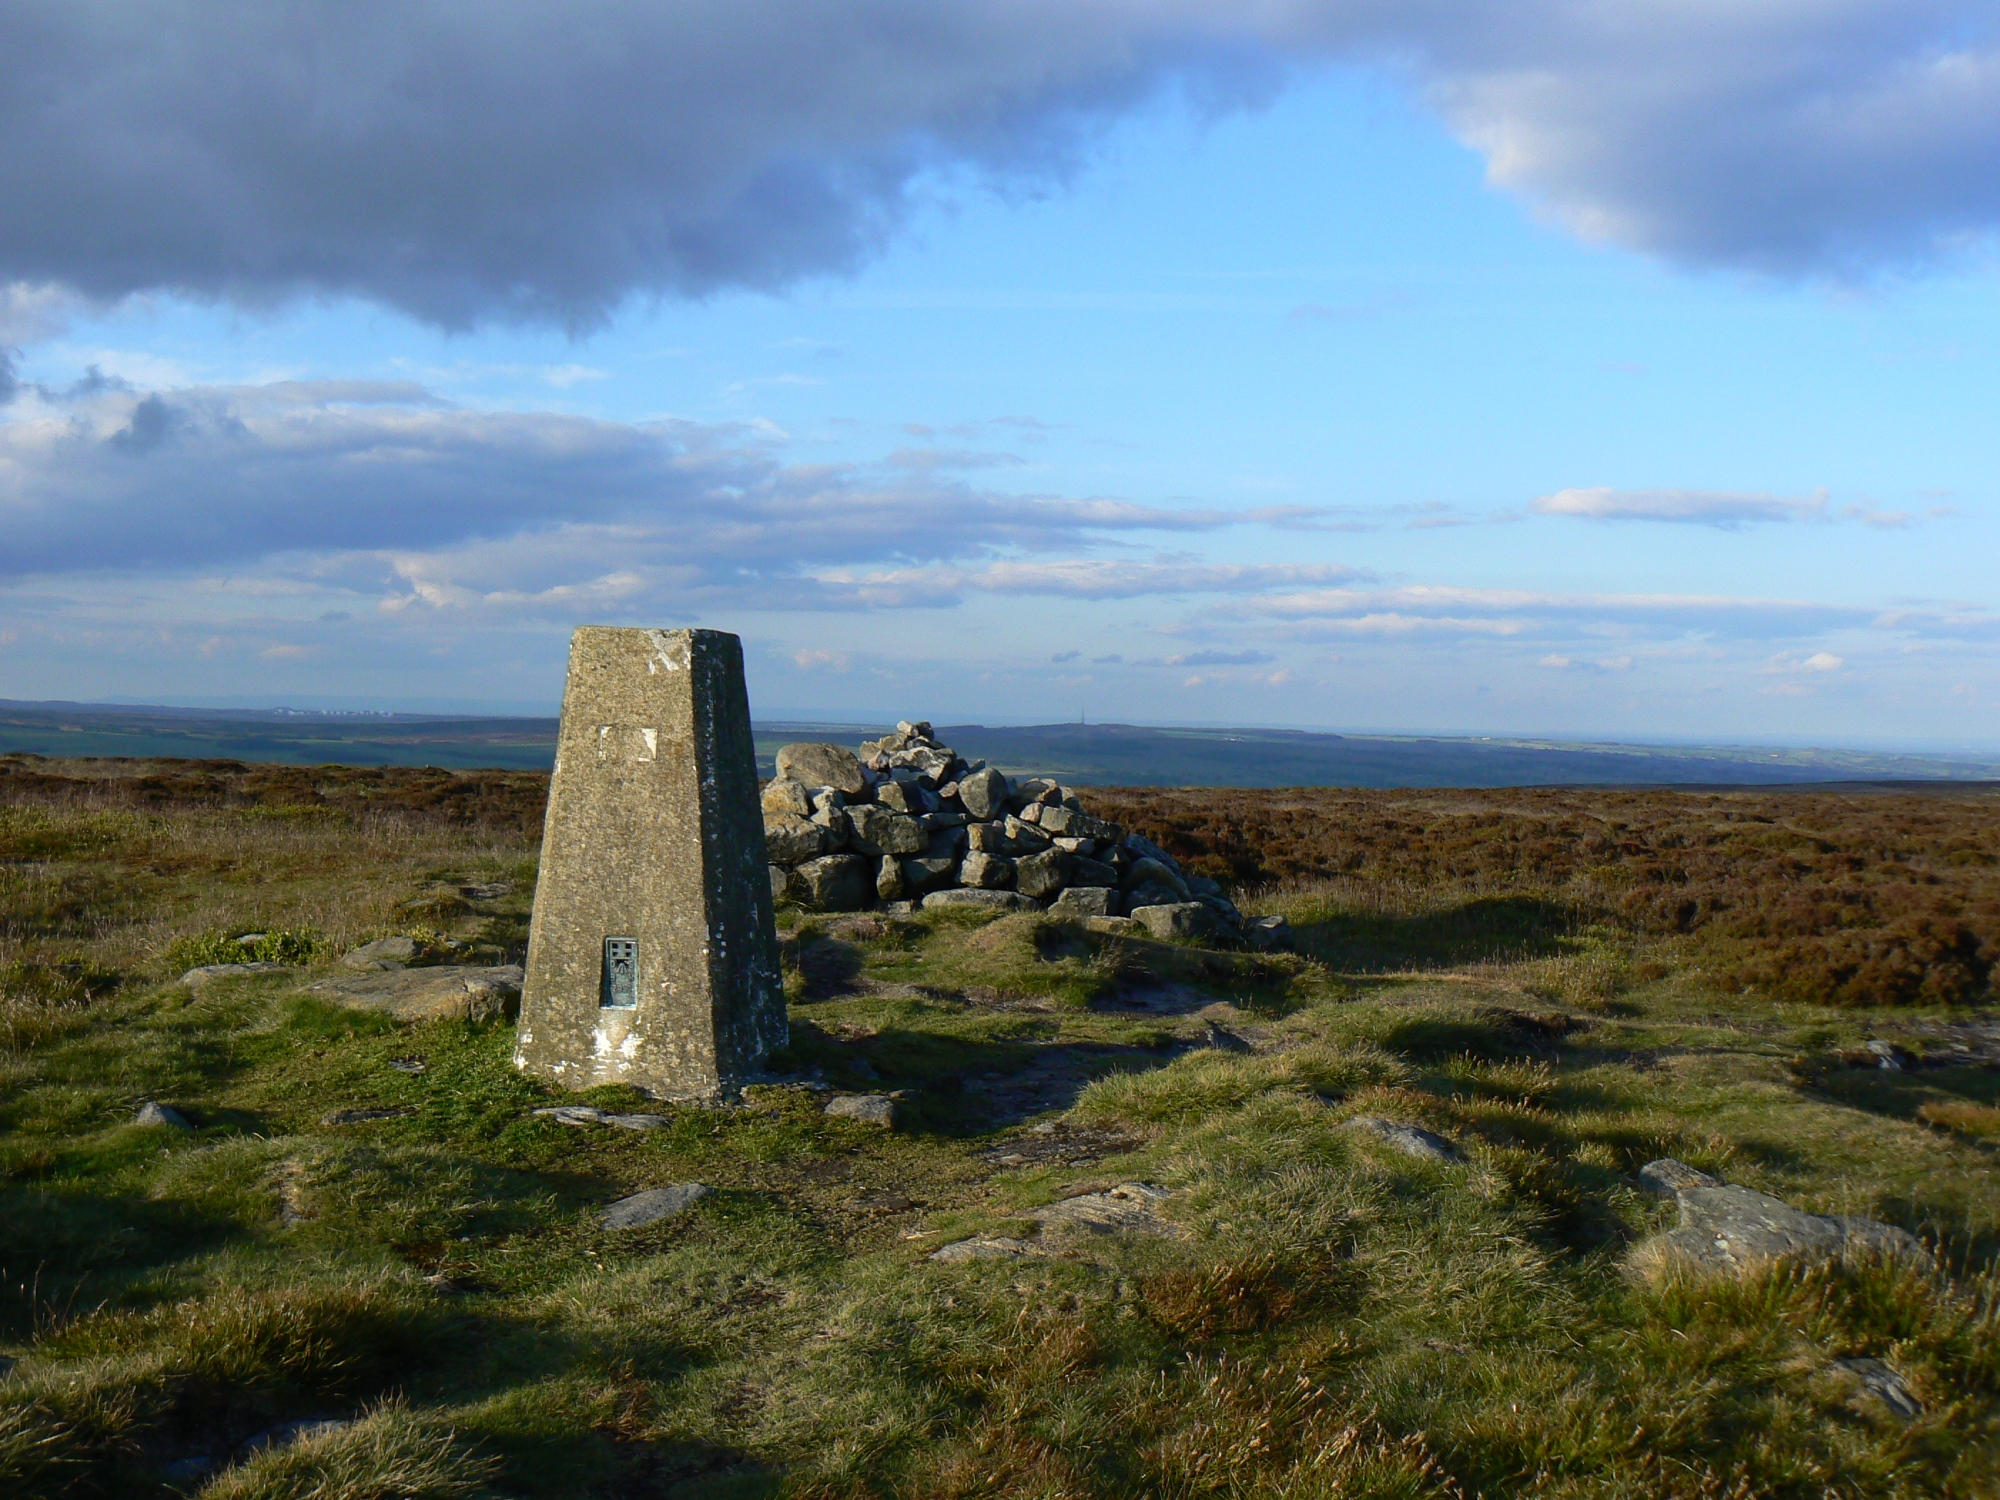 Rombalds Moor Trig Point